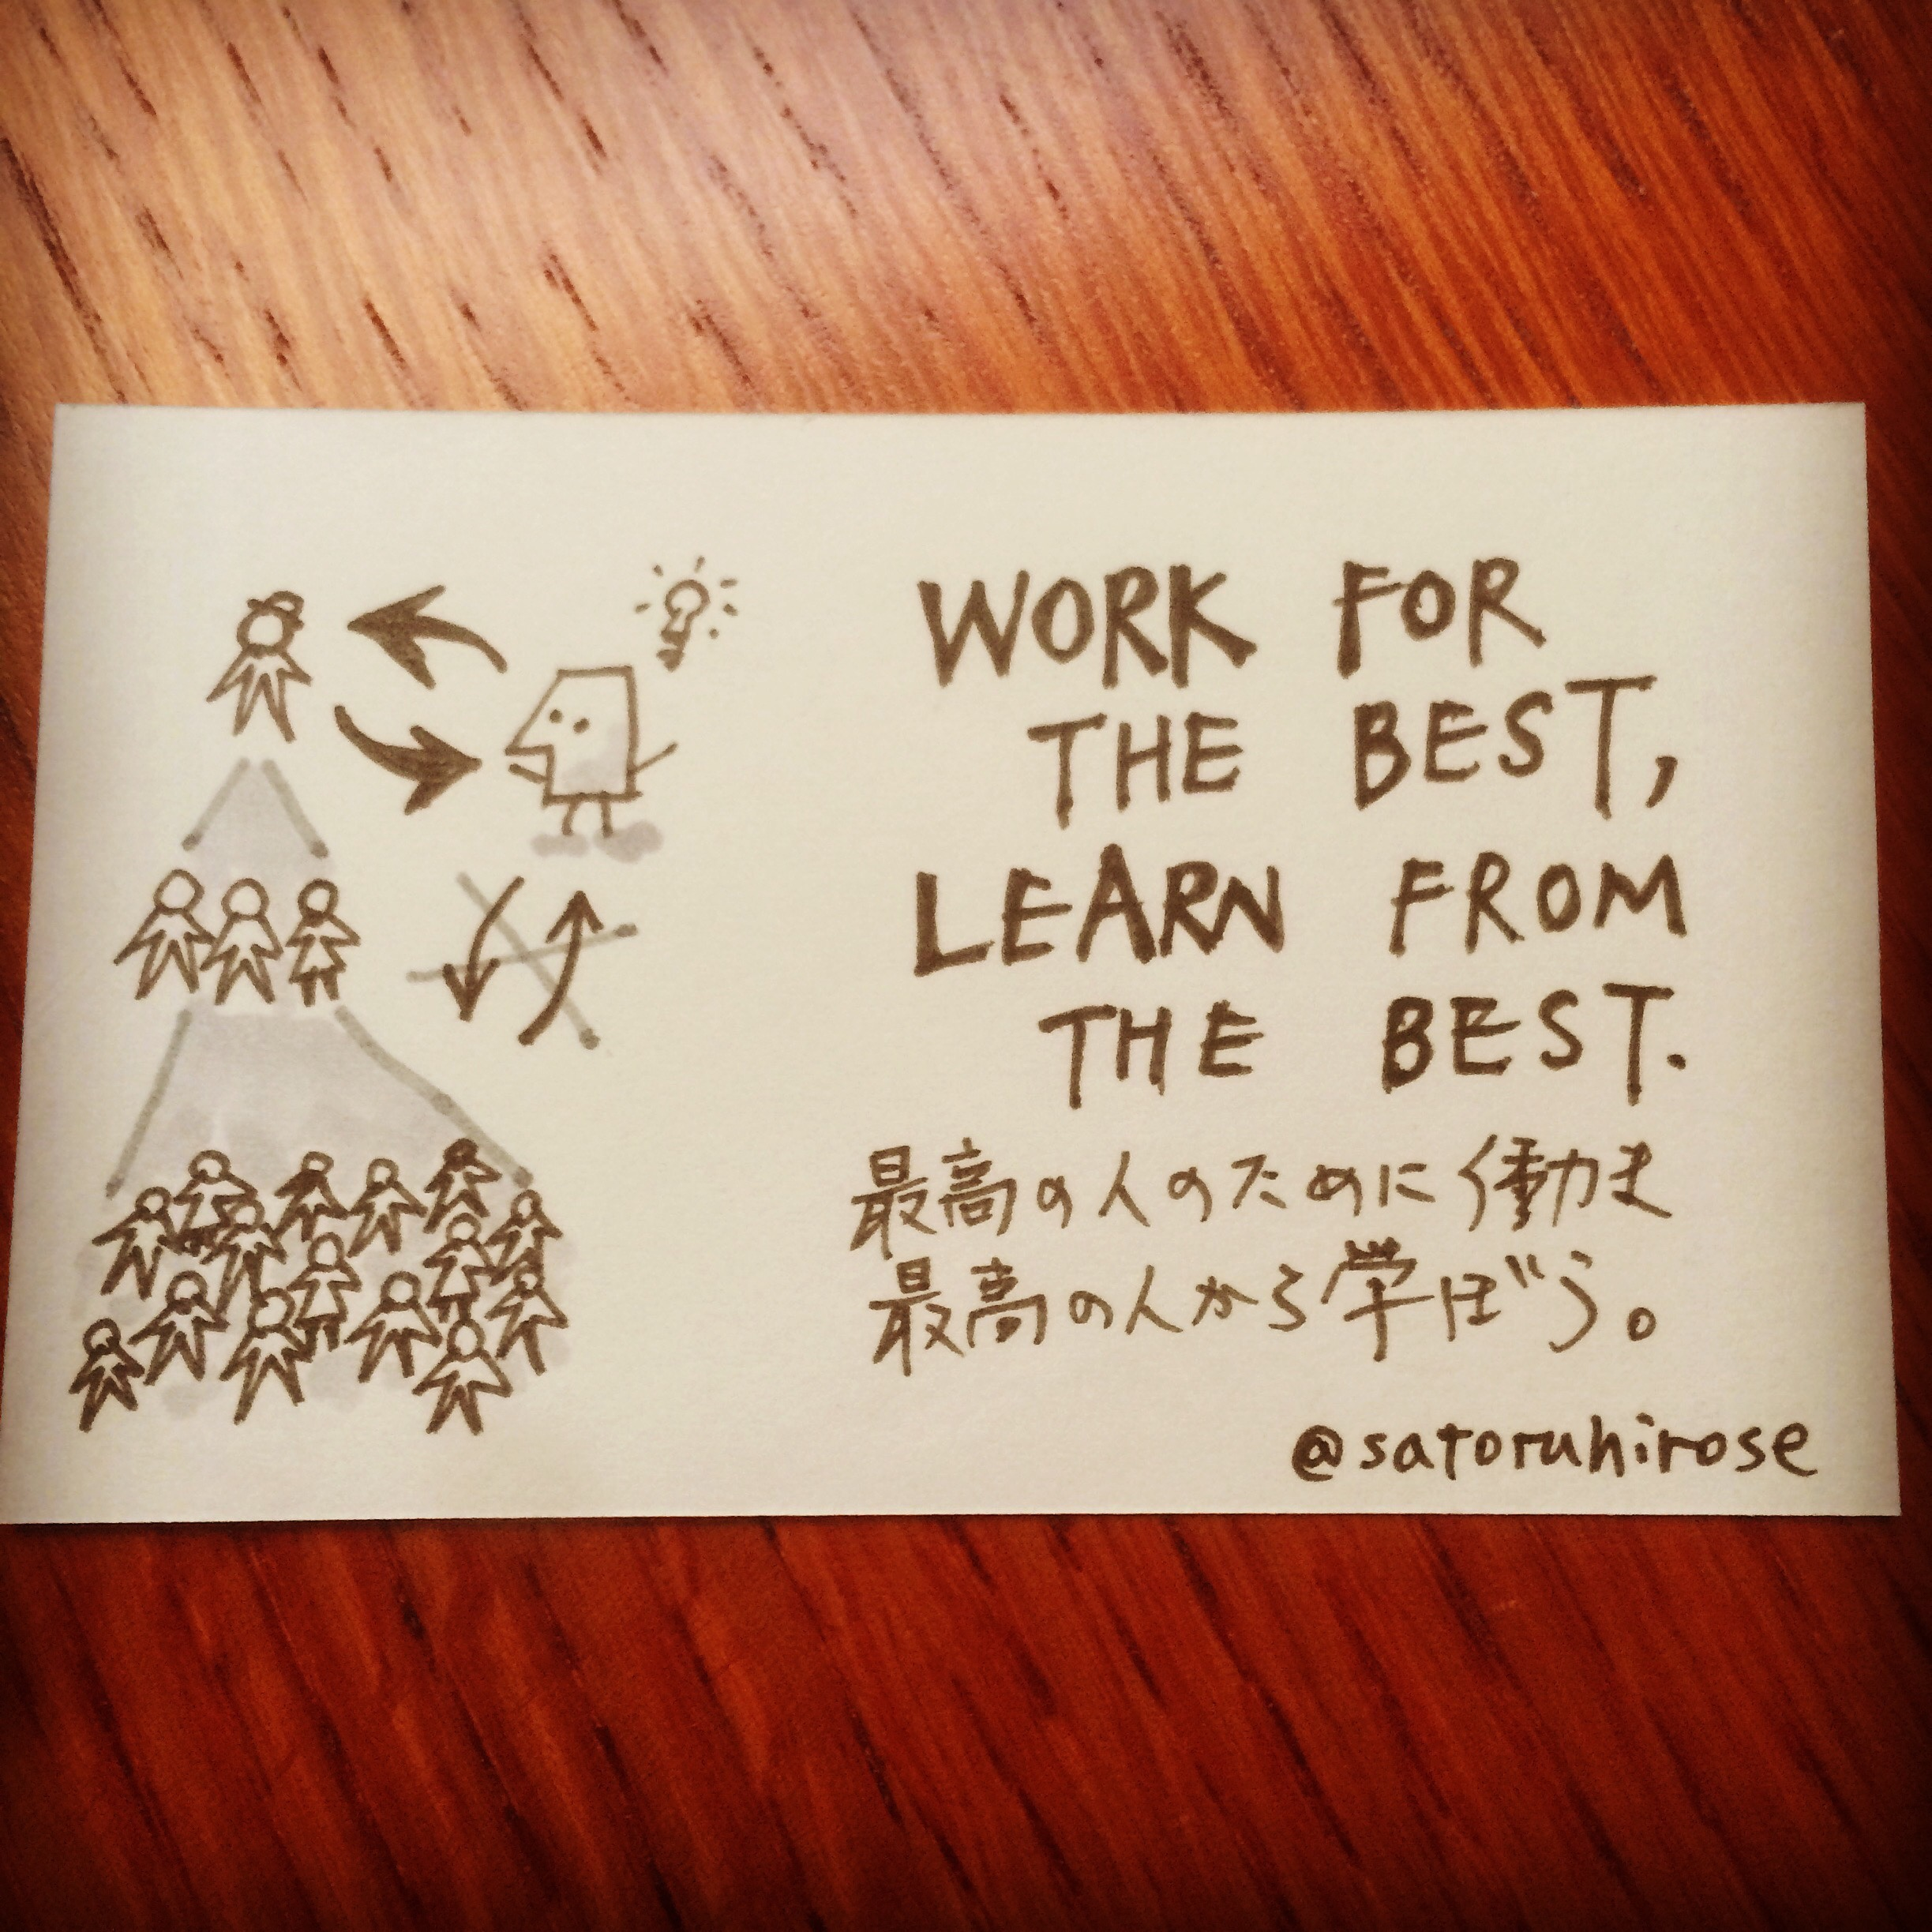 Work for the best, learn from the best.